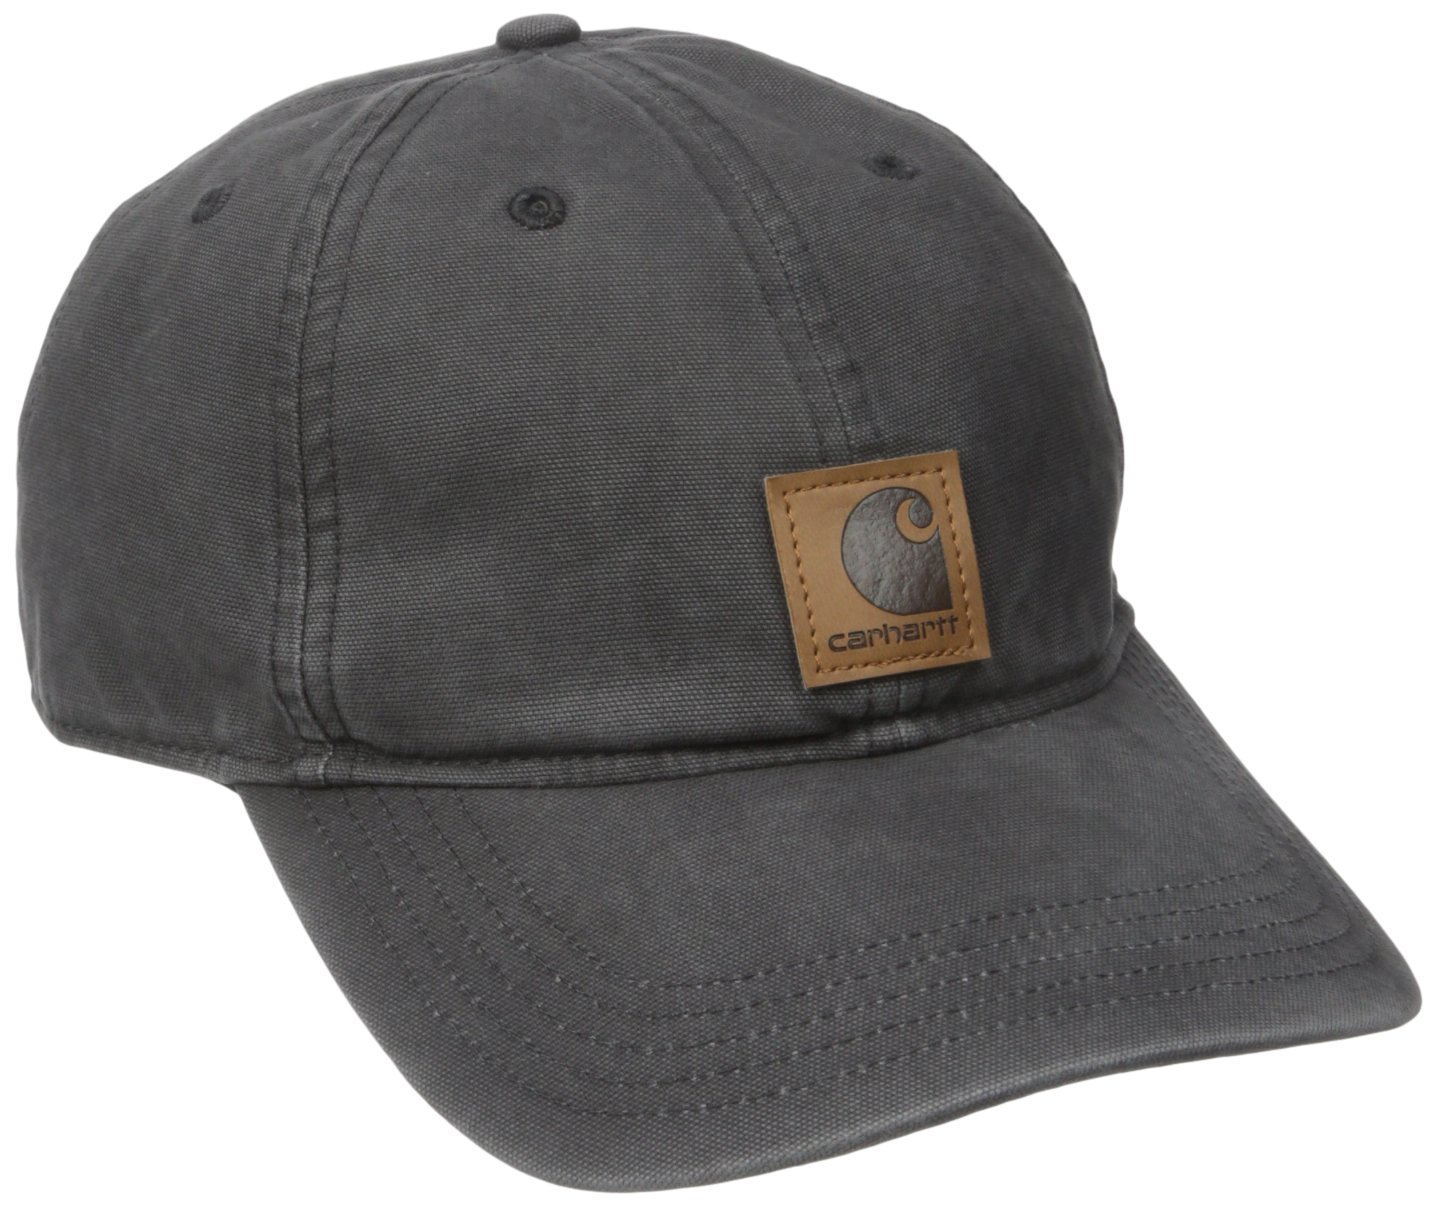 Carhartt Men's Medium Profile 100 Percent Cotton Odessa Force Cap, Black, One Size by Carhartt